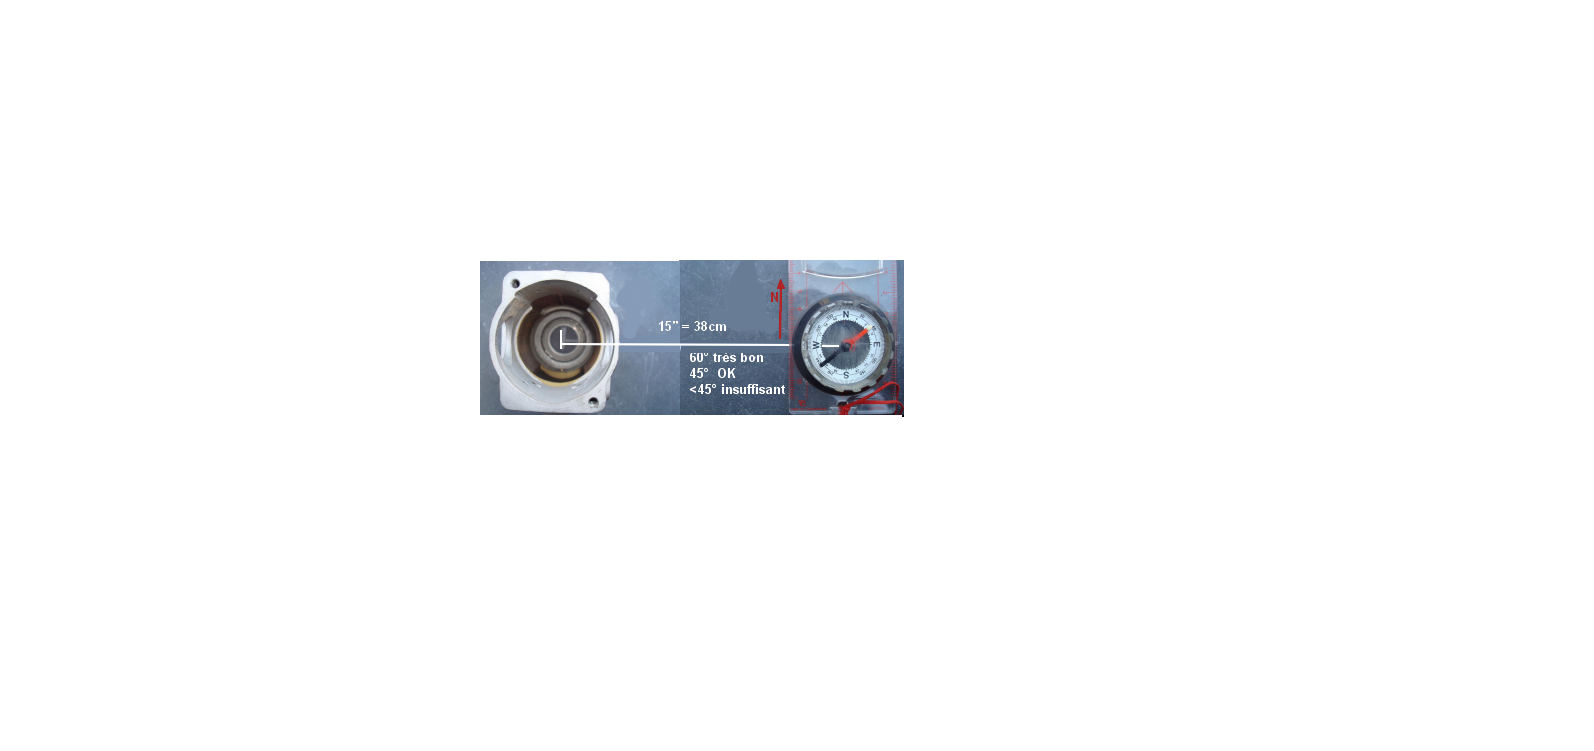 Magneto basse tension pour B33 862784TestMagnet3JPGthumb